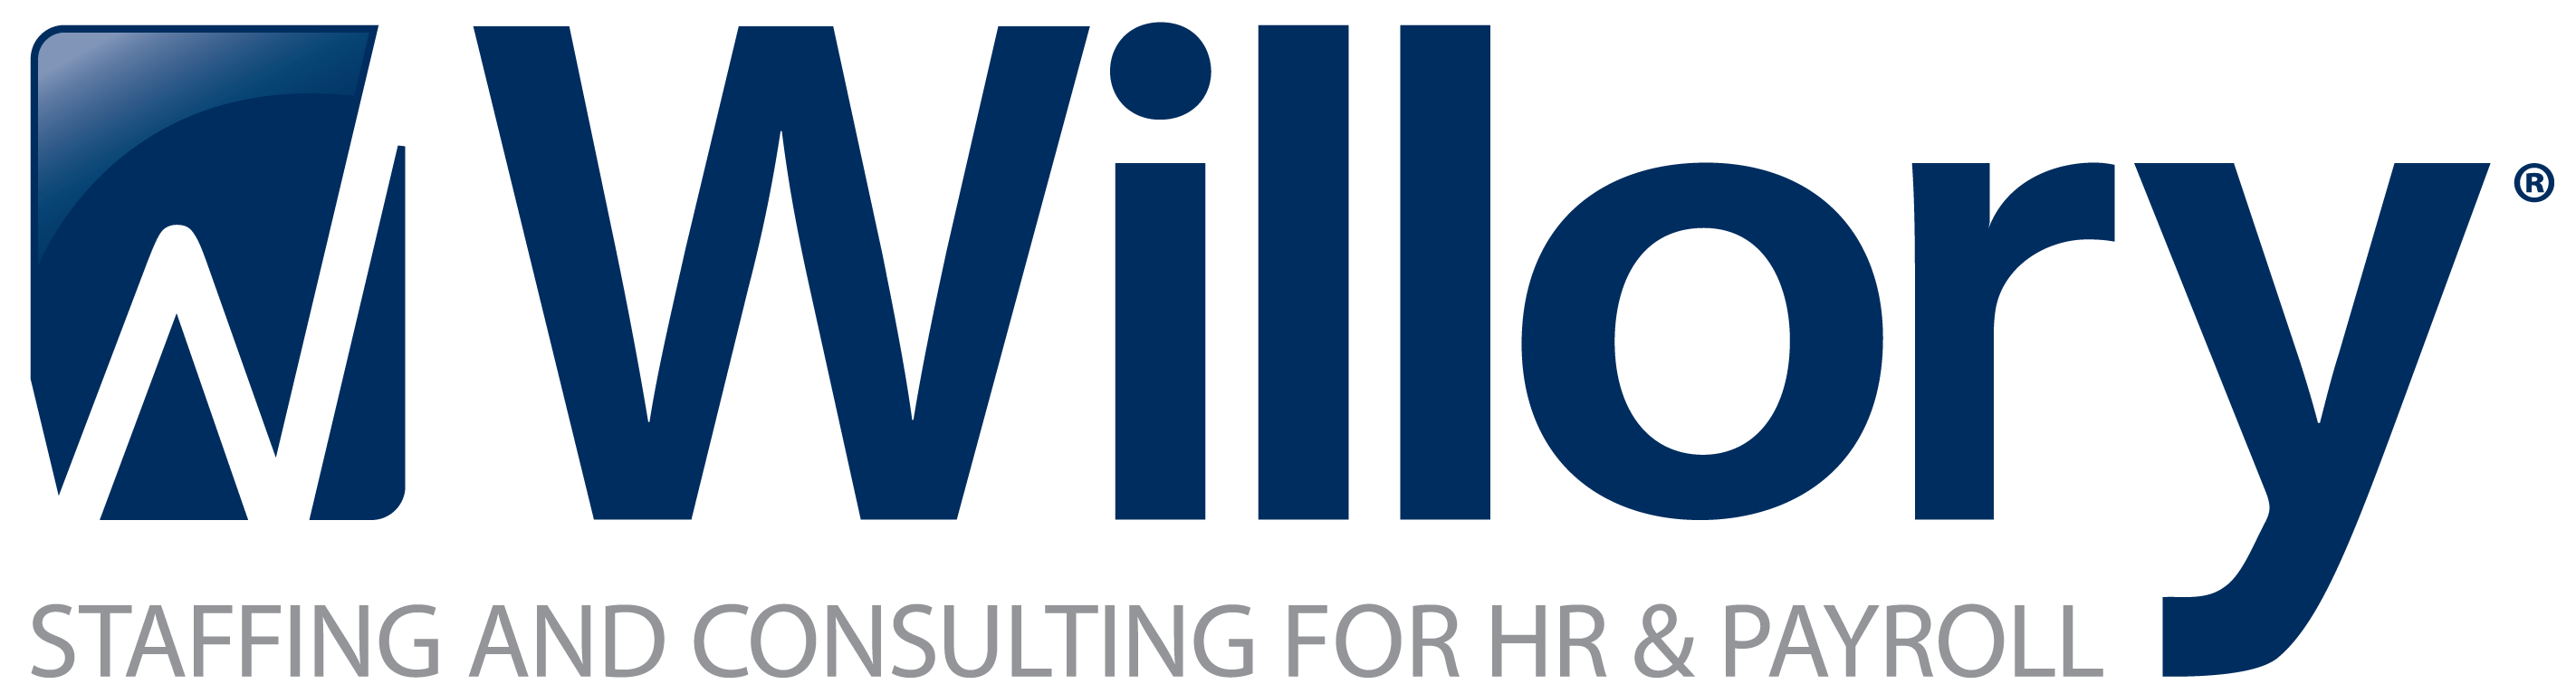 willory-logo-2